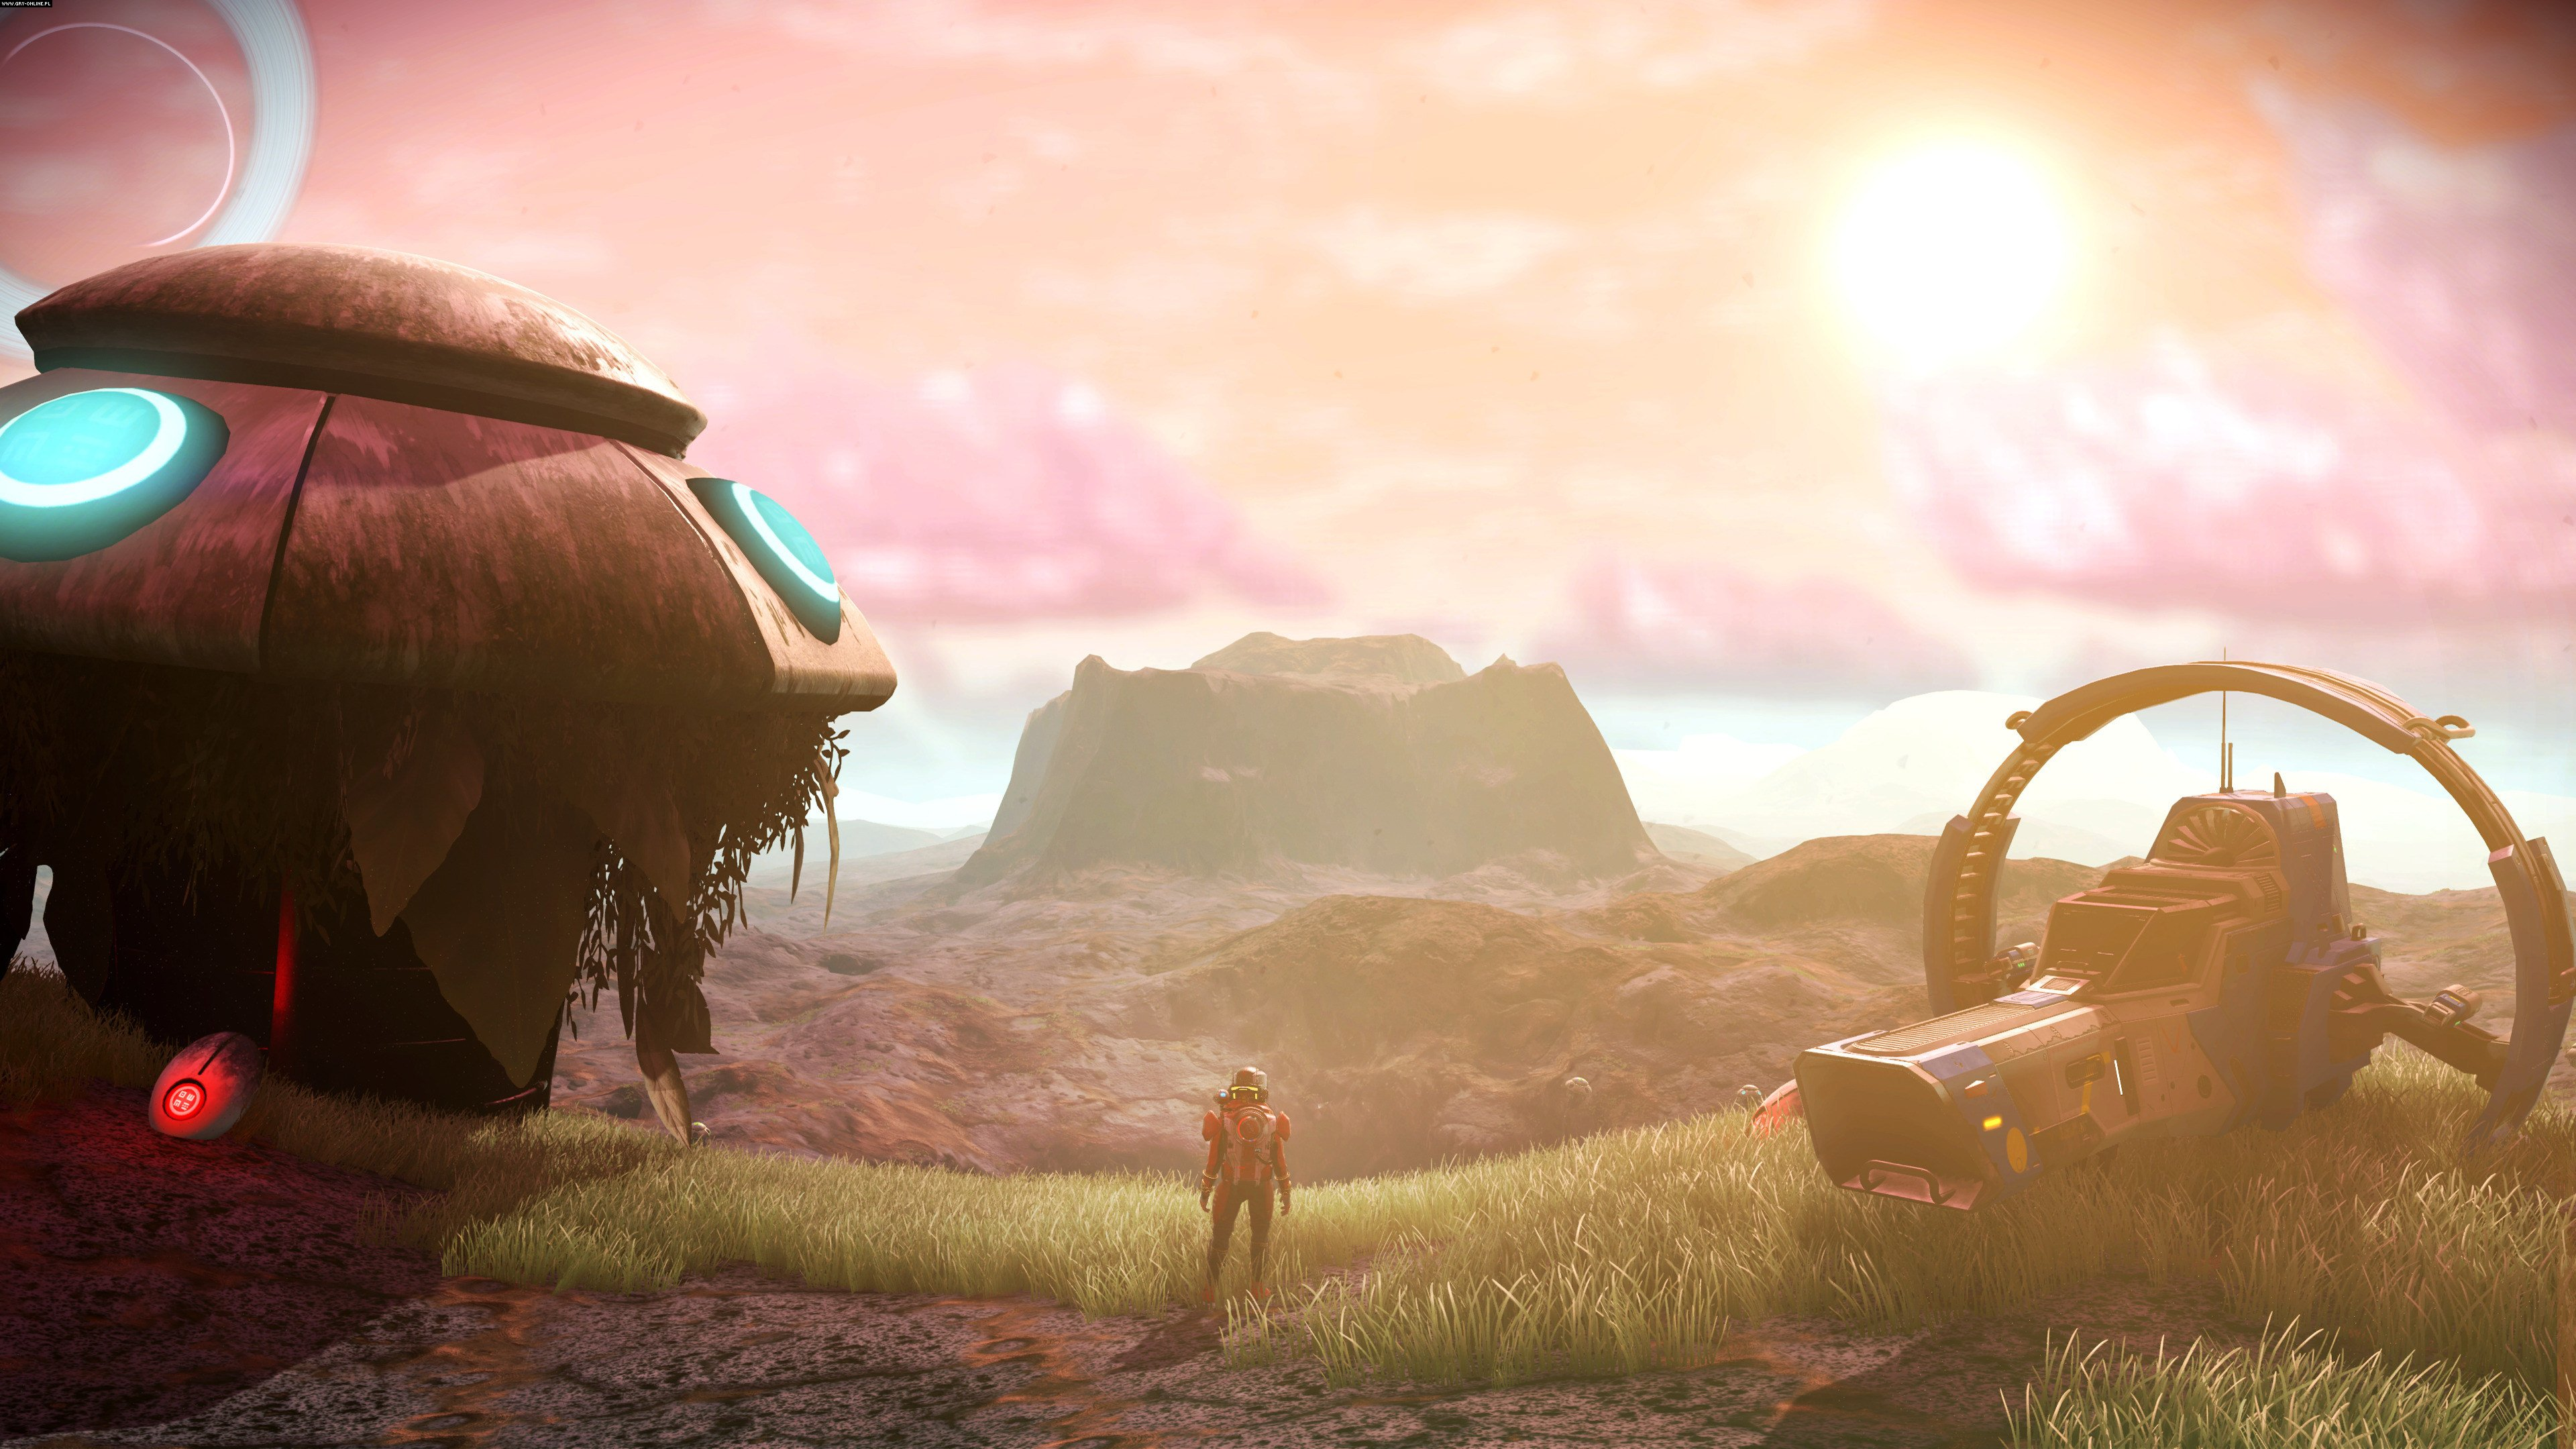 No Man's Sky PC, PS4, XONE Gry Screen 3/46, Hello Games